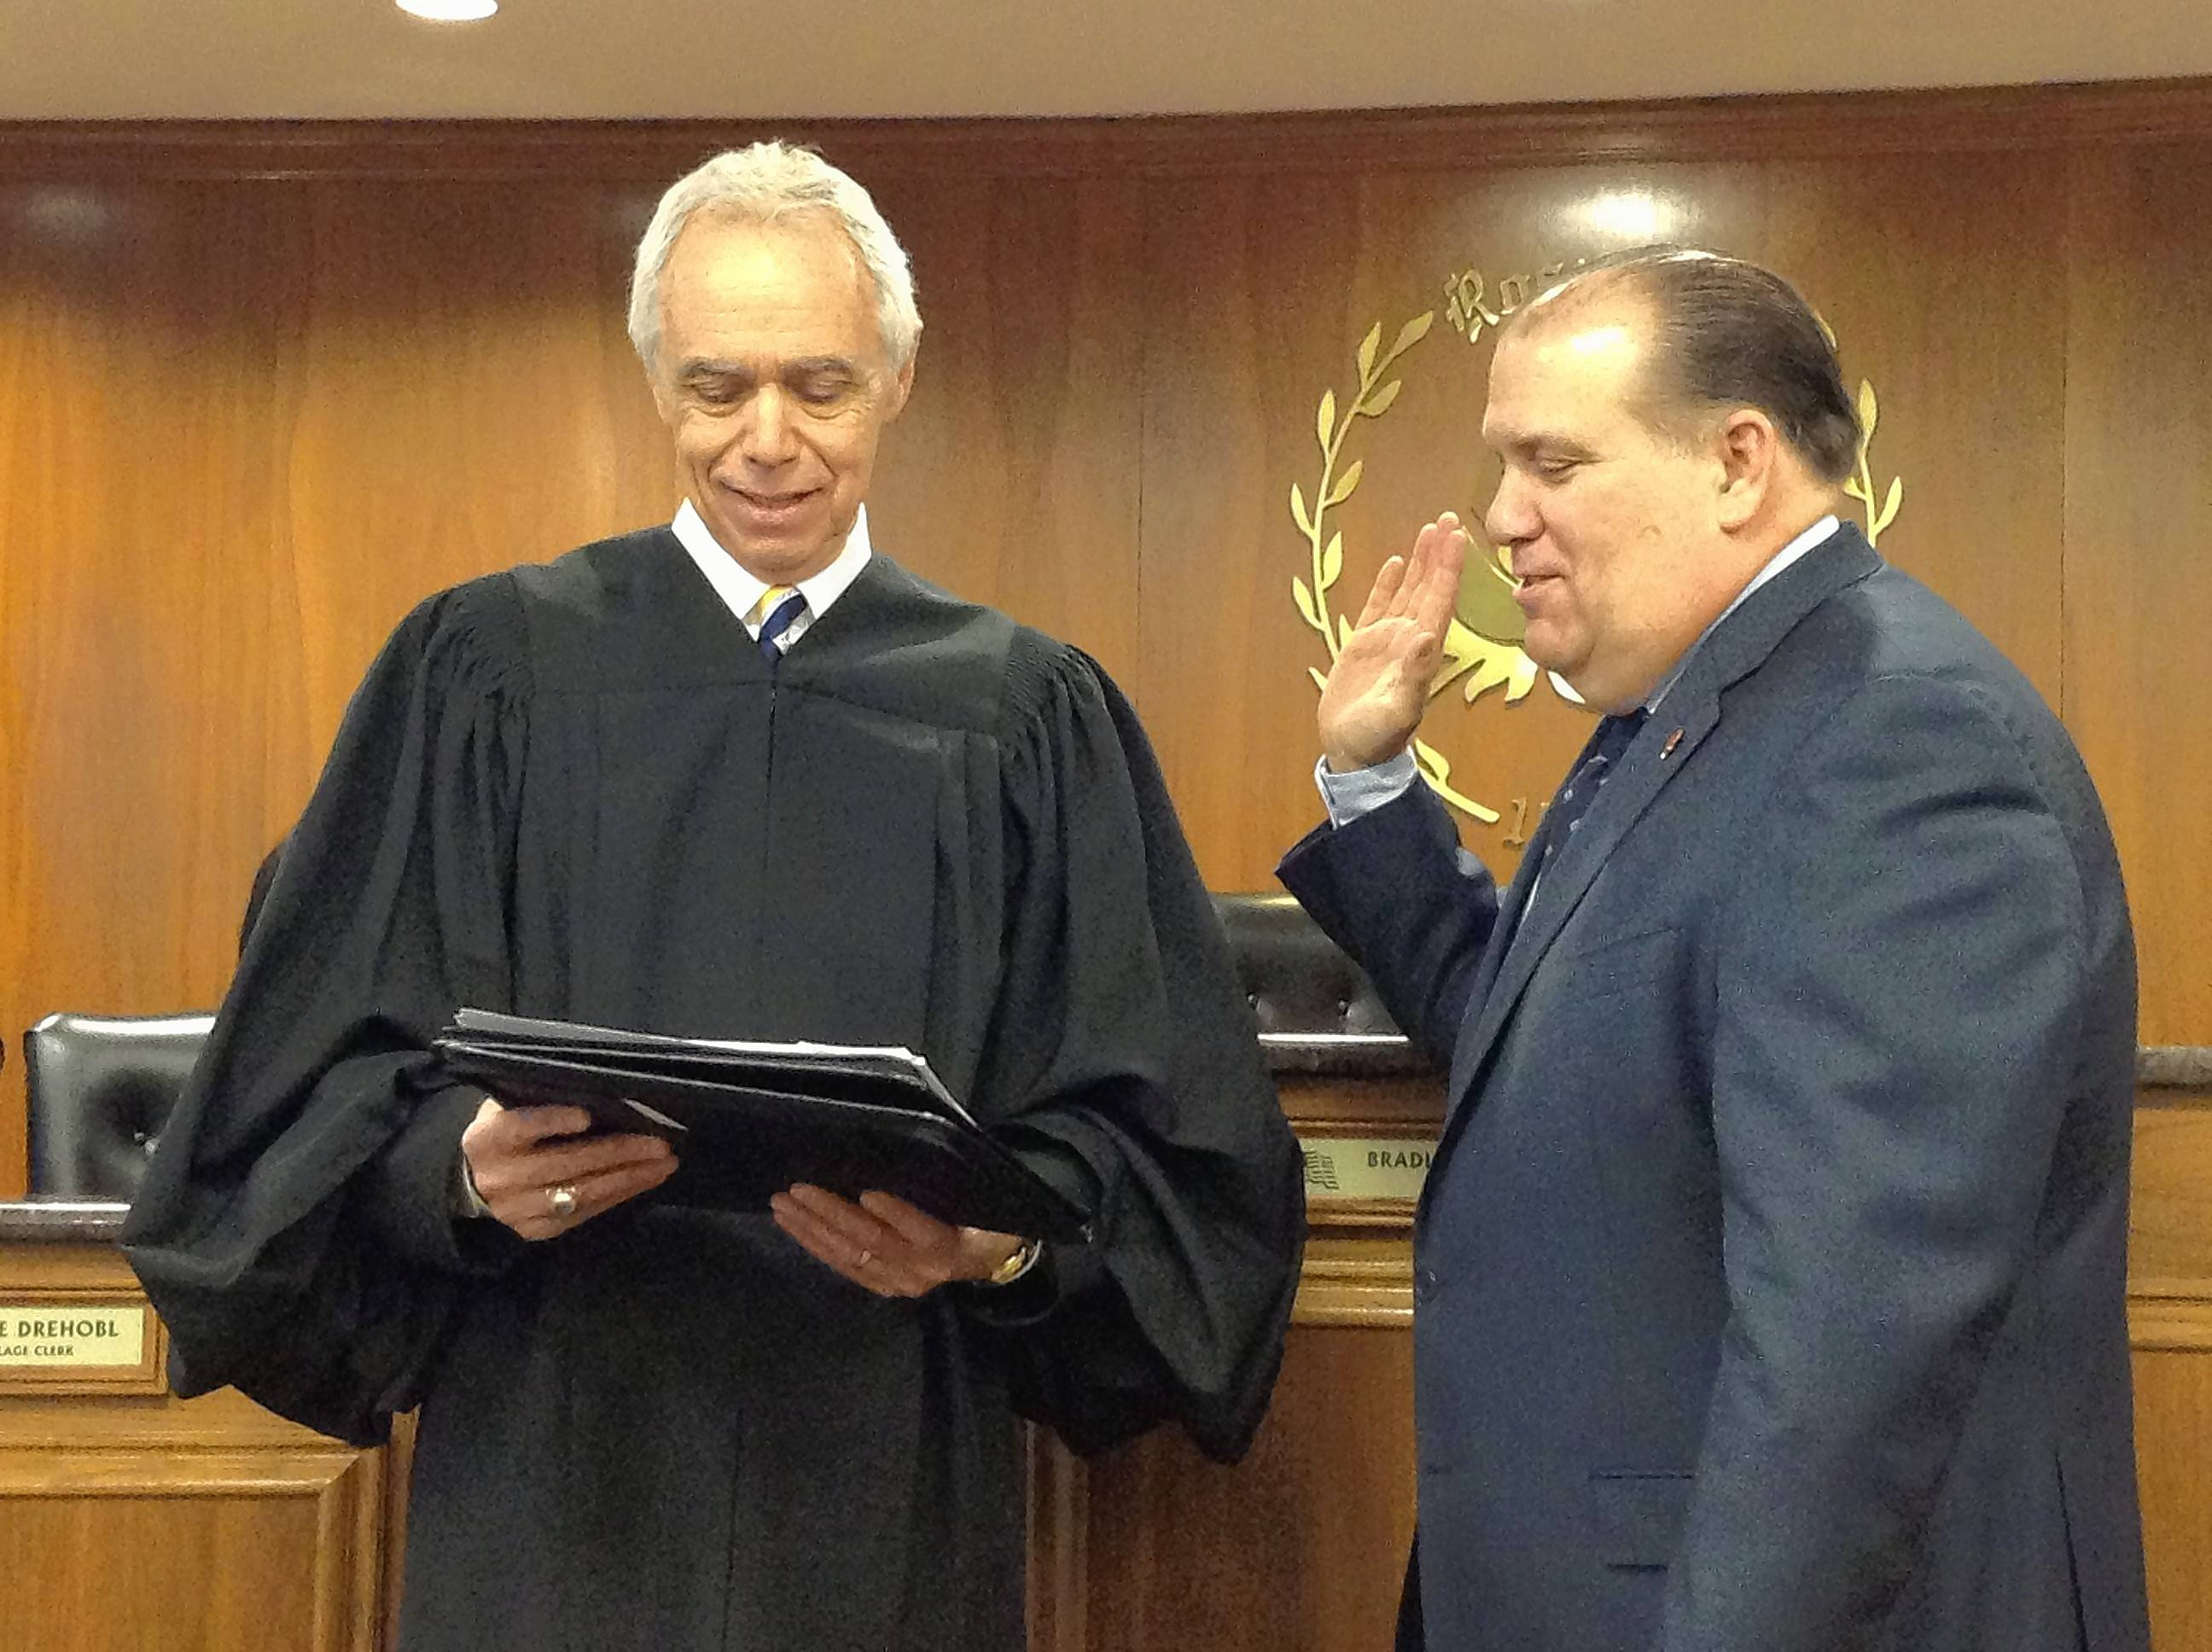 Rosemont Mayor Brad Stephens, right, is sworn into his third full 4-year term Wednesday by Illinois Court of Claims Judge Don Storino. Starting with the new term, Stephens is getting a 53 percent raise.